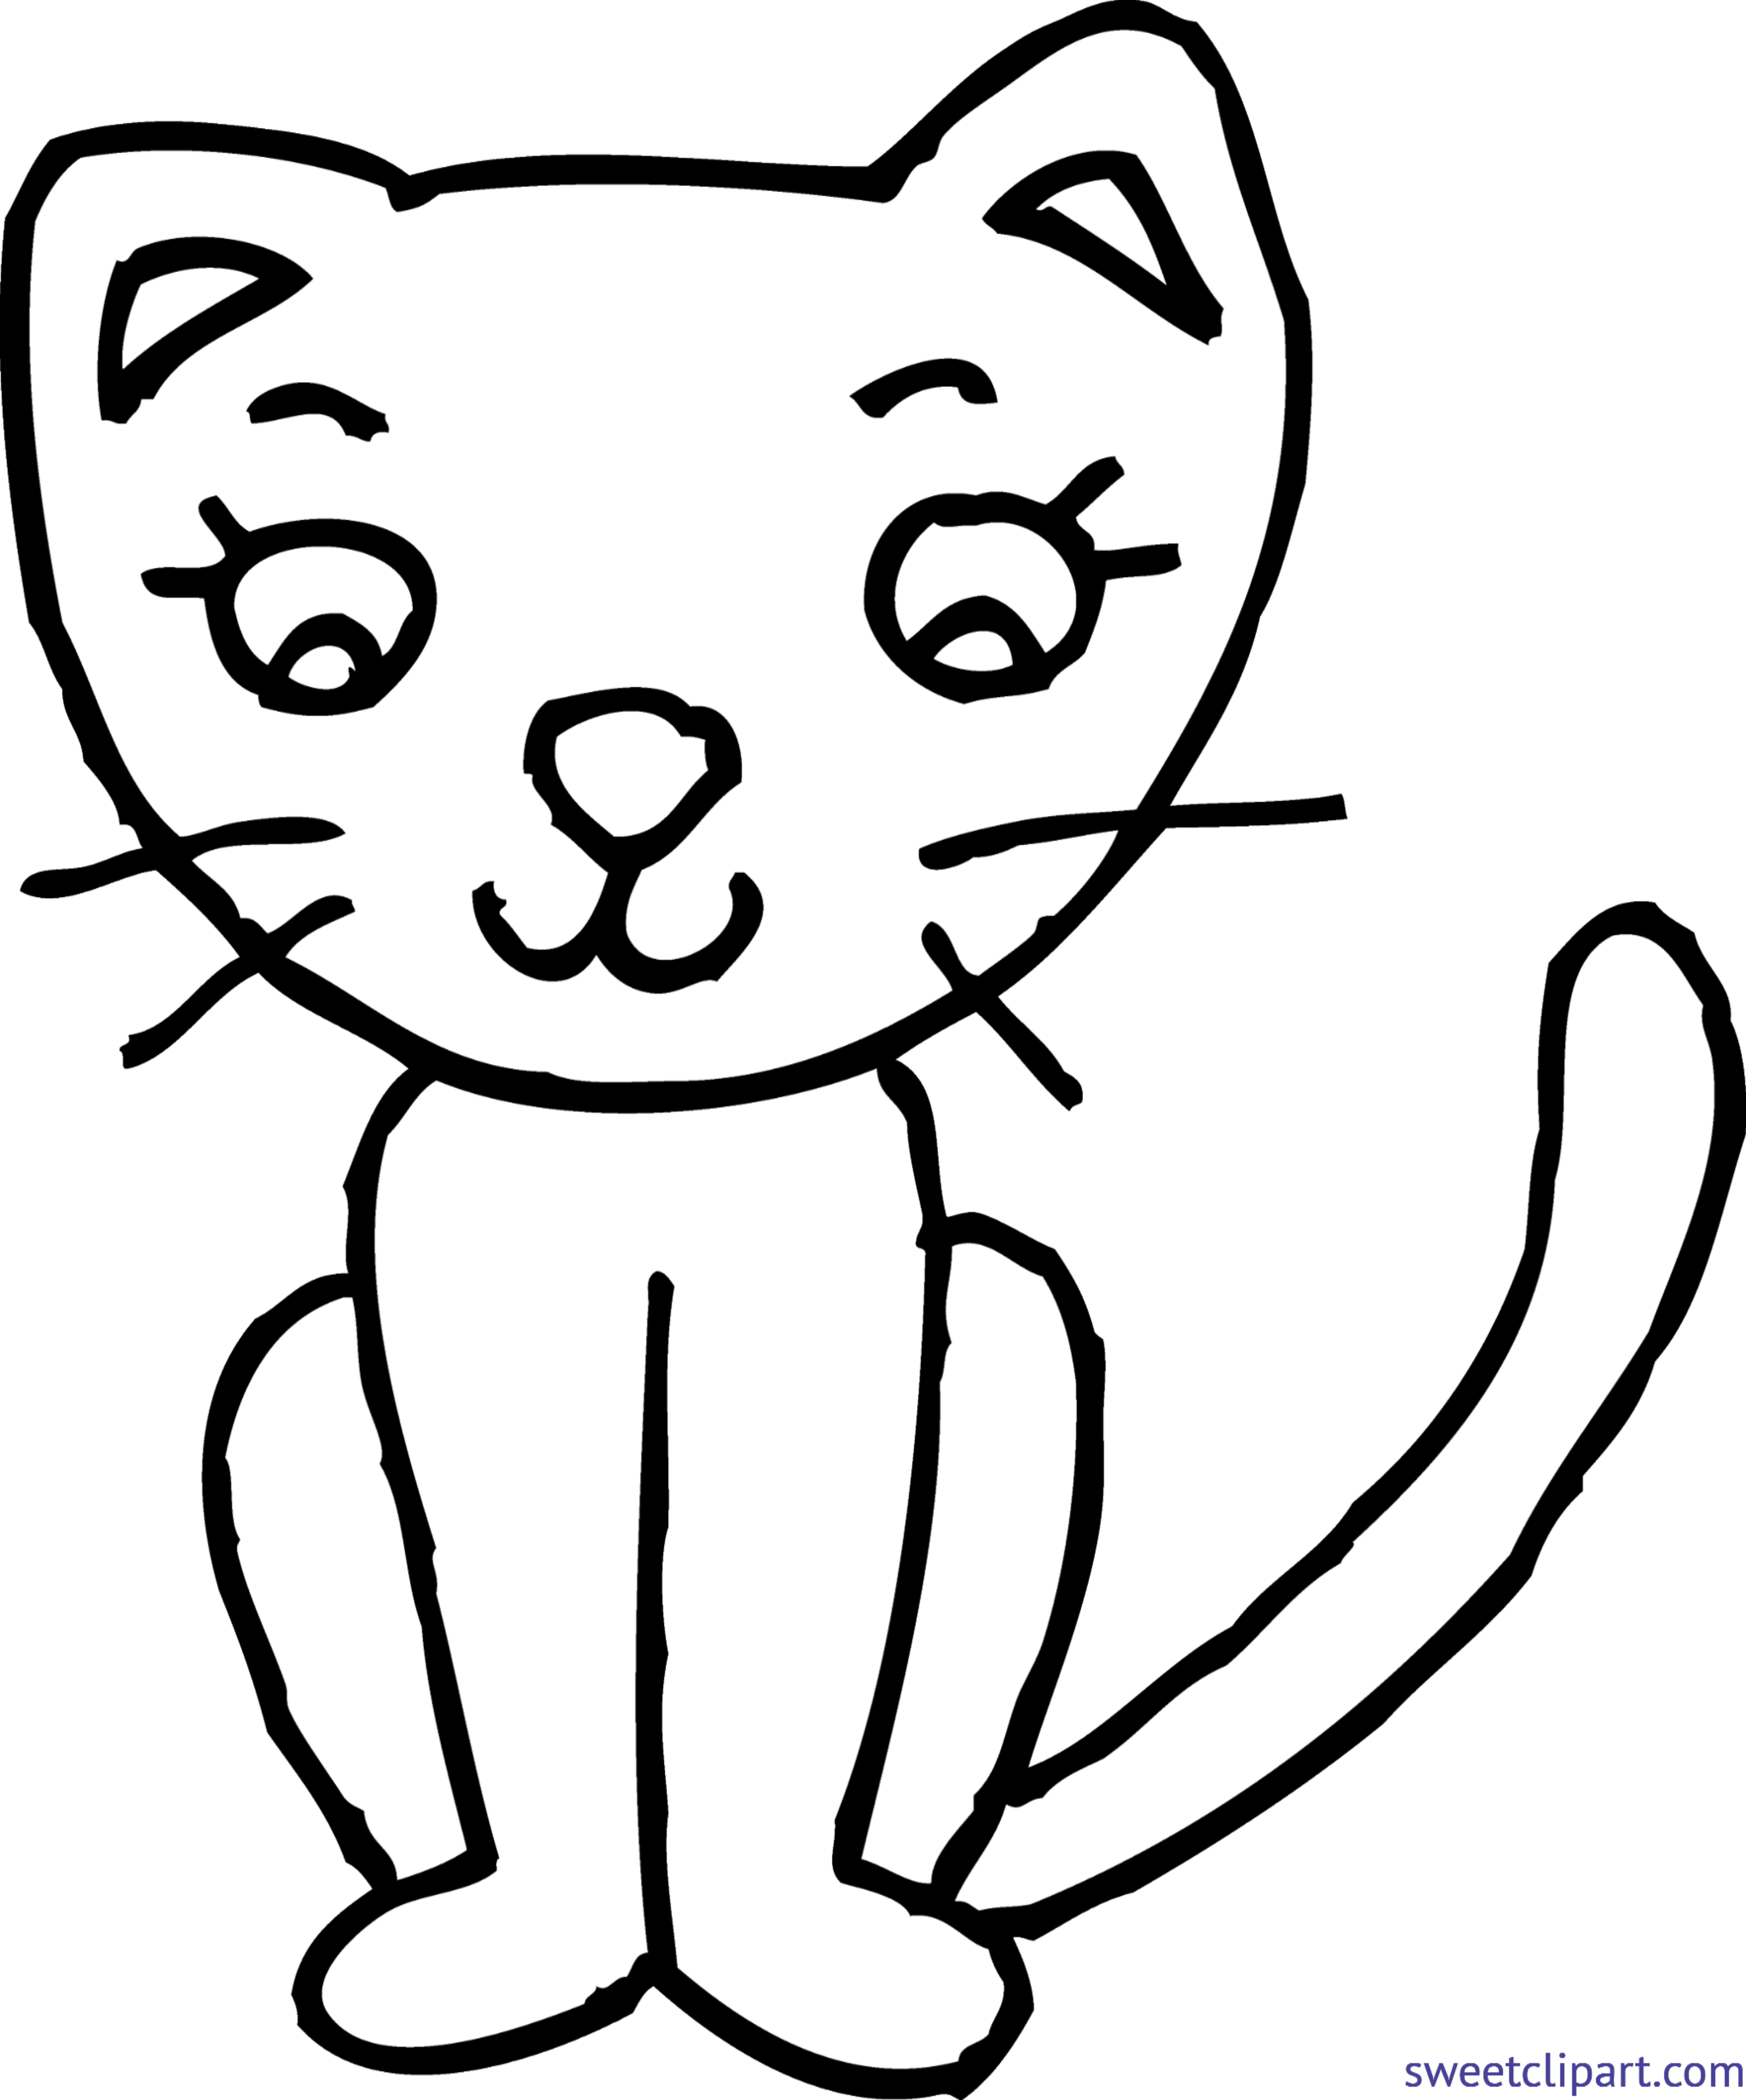 Coloring page clip art. Kitty clipart kitty cat